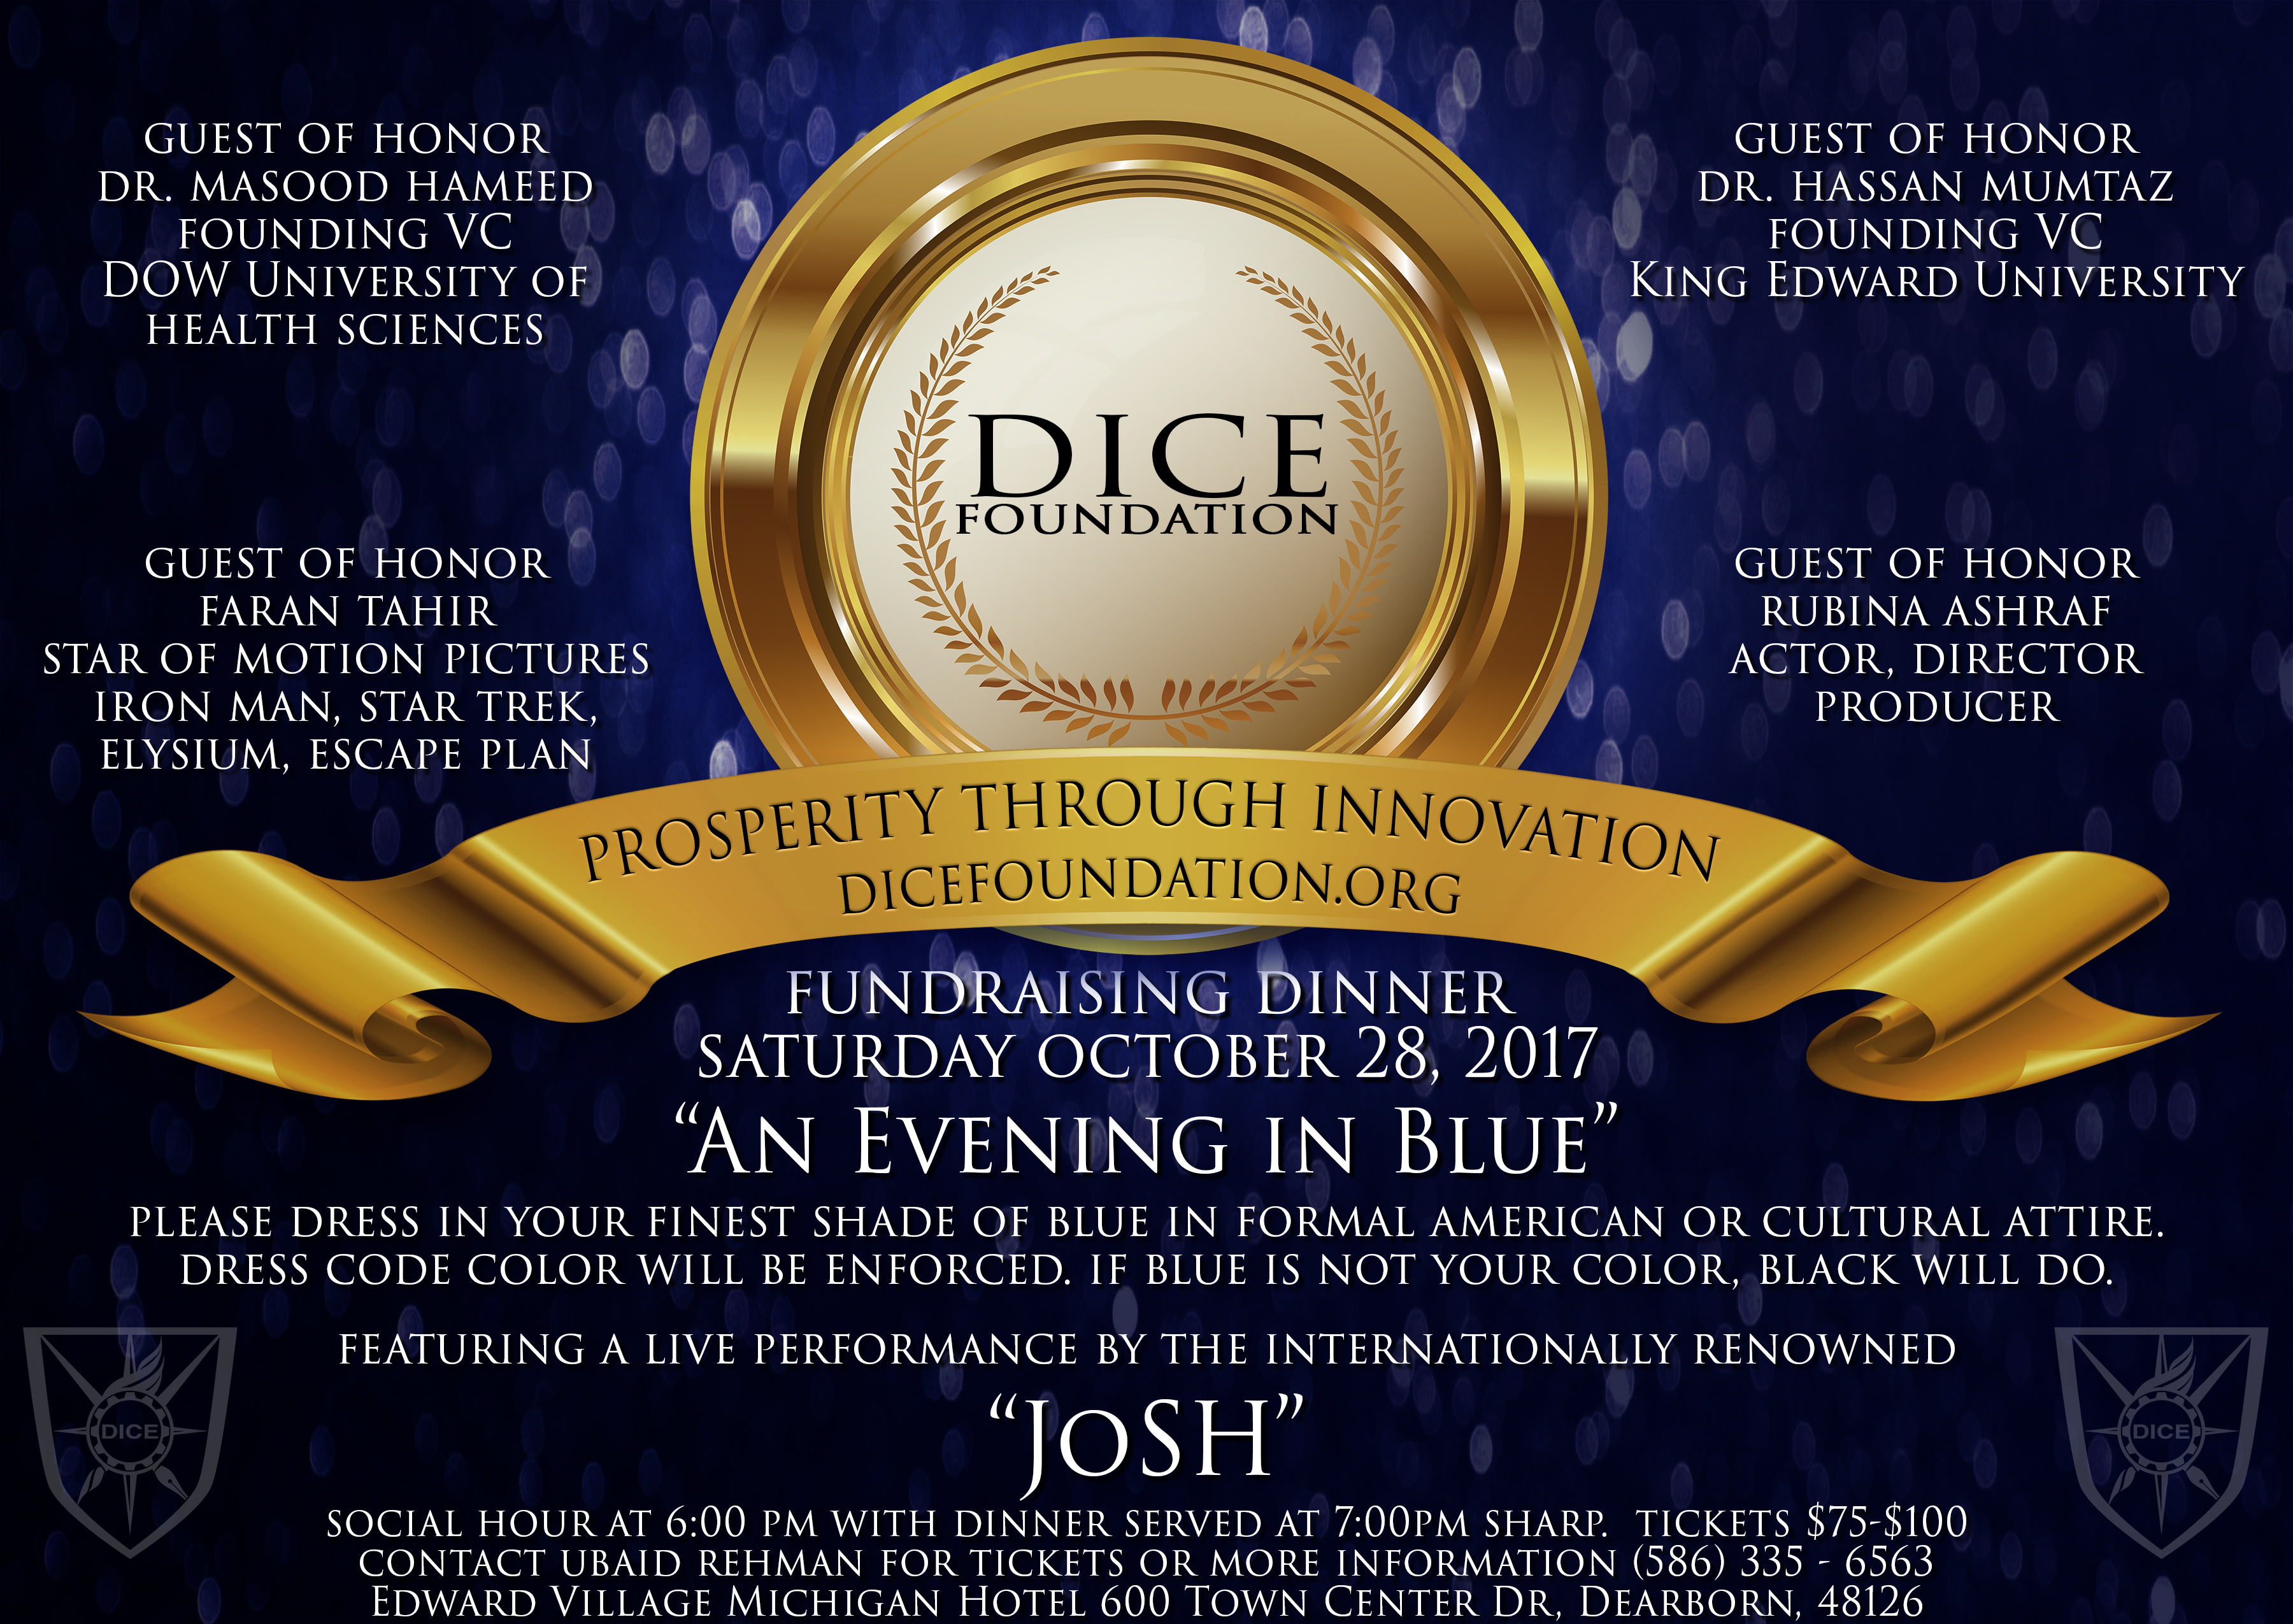 Dice Foundation Annual Fundraising And Banquet On Oct 28 2017 In